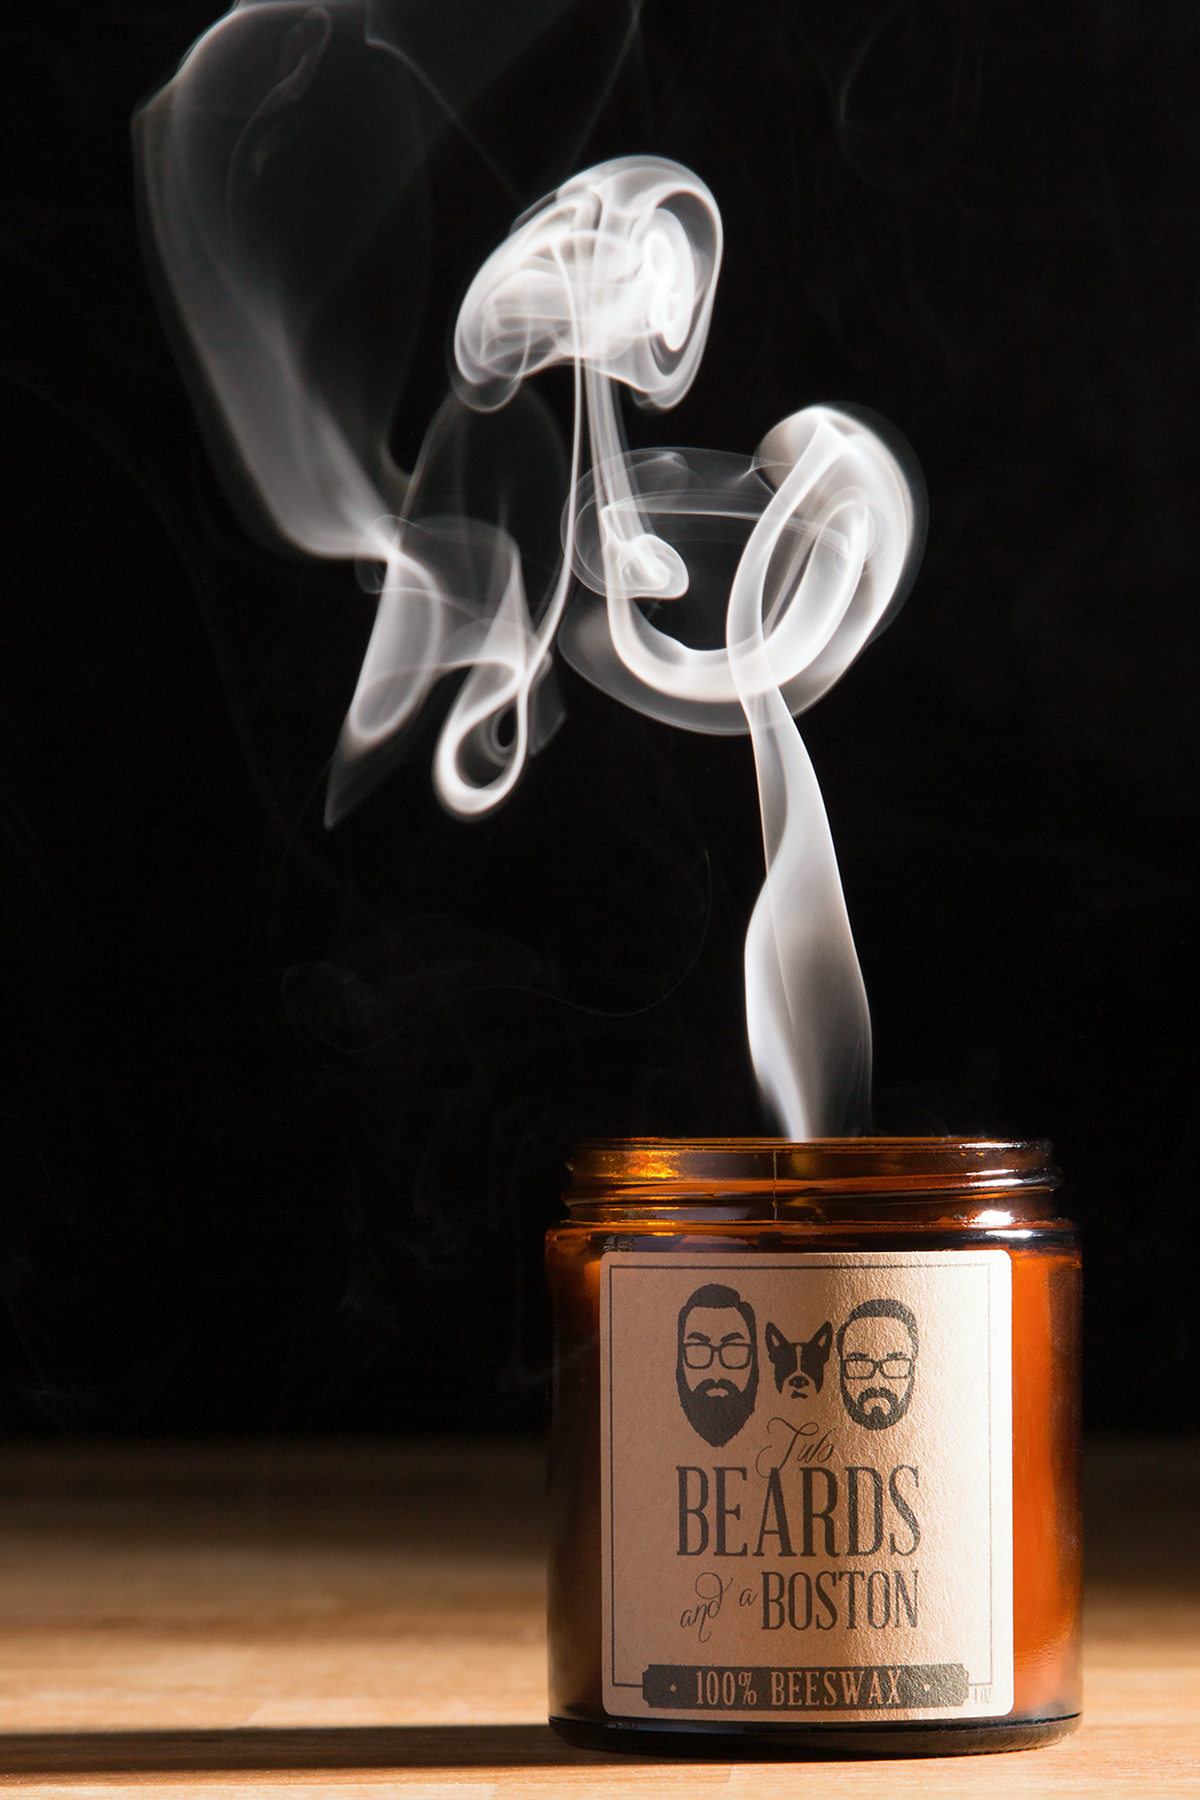 Two Beards and a Boston - Branding • Product Design • Product Photography